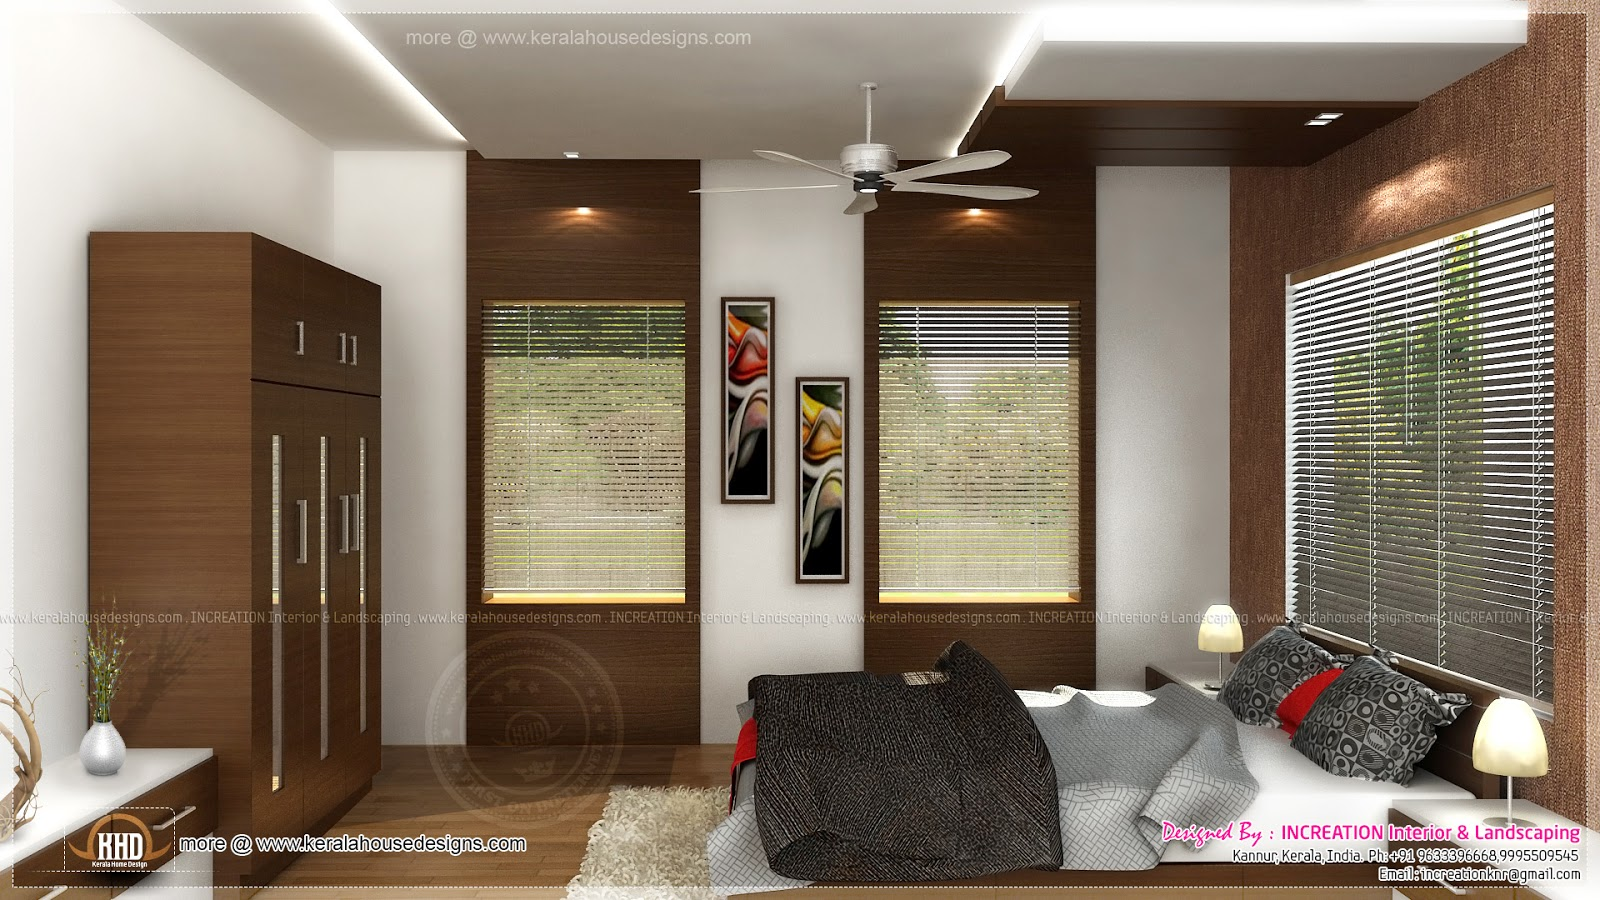 Interior designs from kannur kerala kerala home design for Kerala house interior arch design